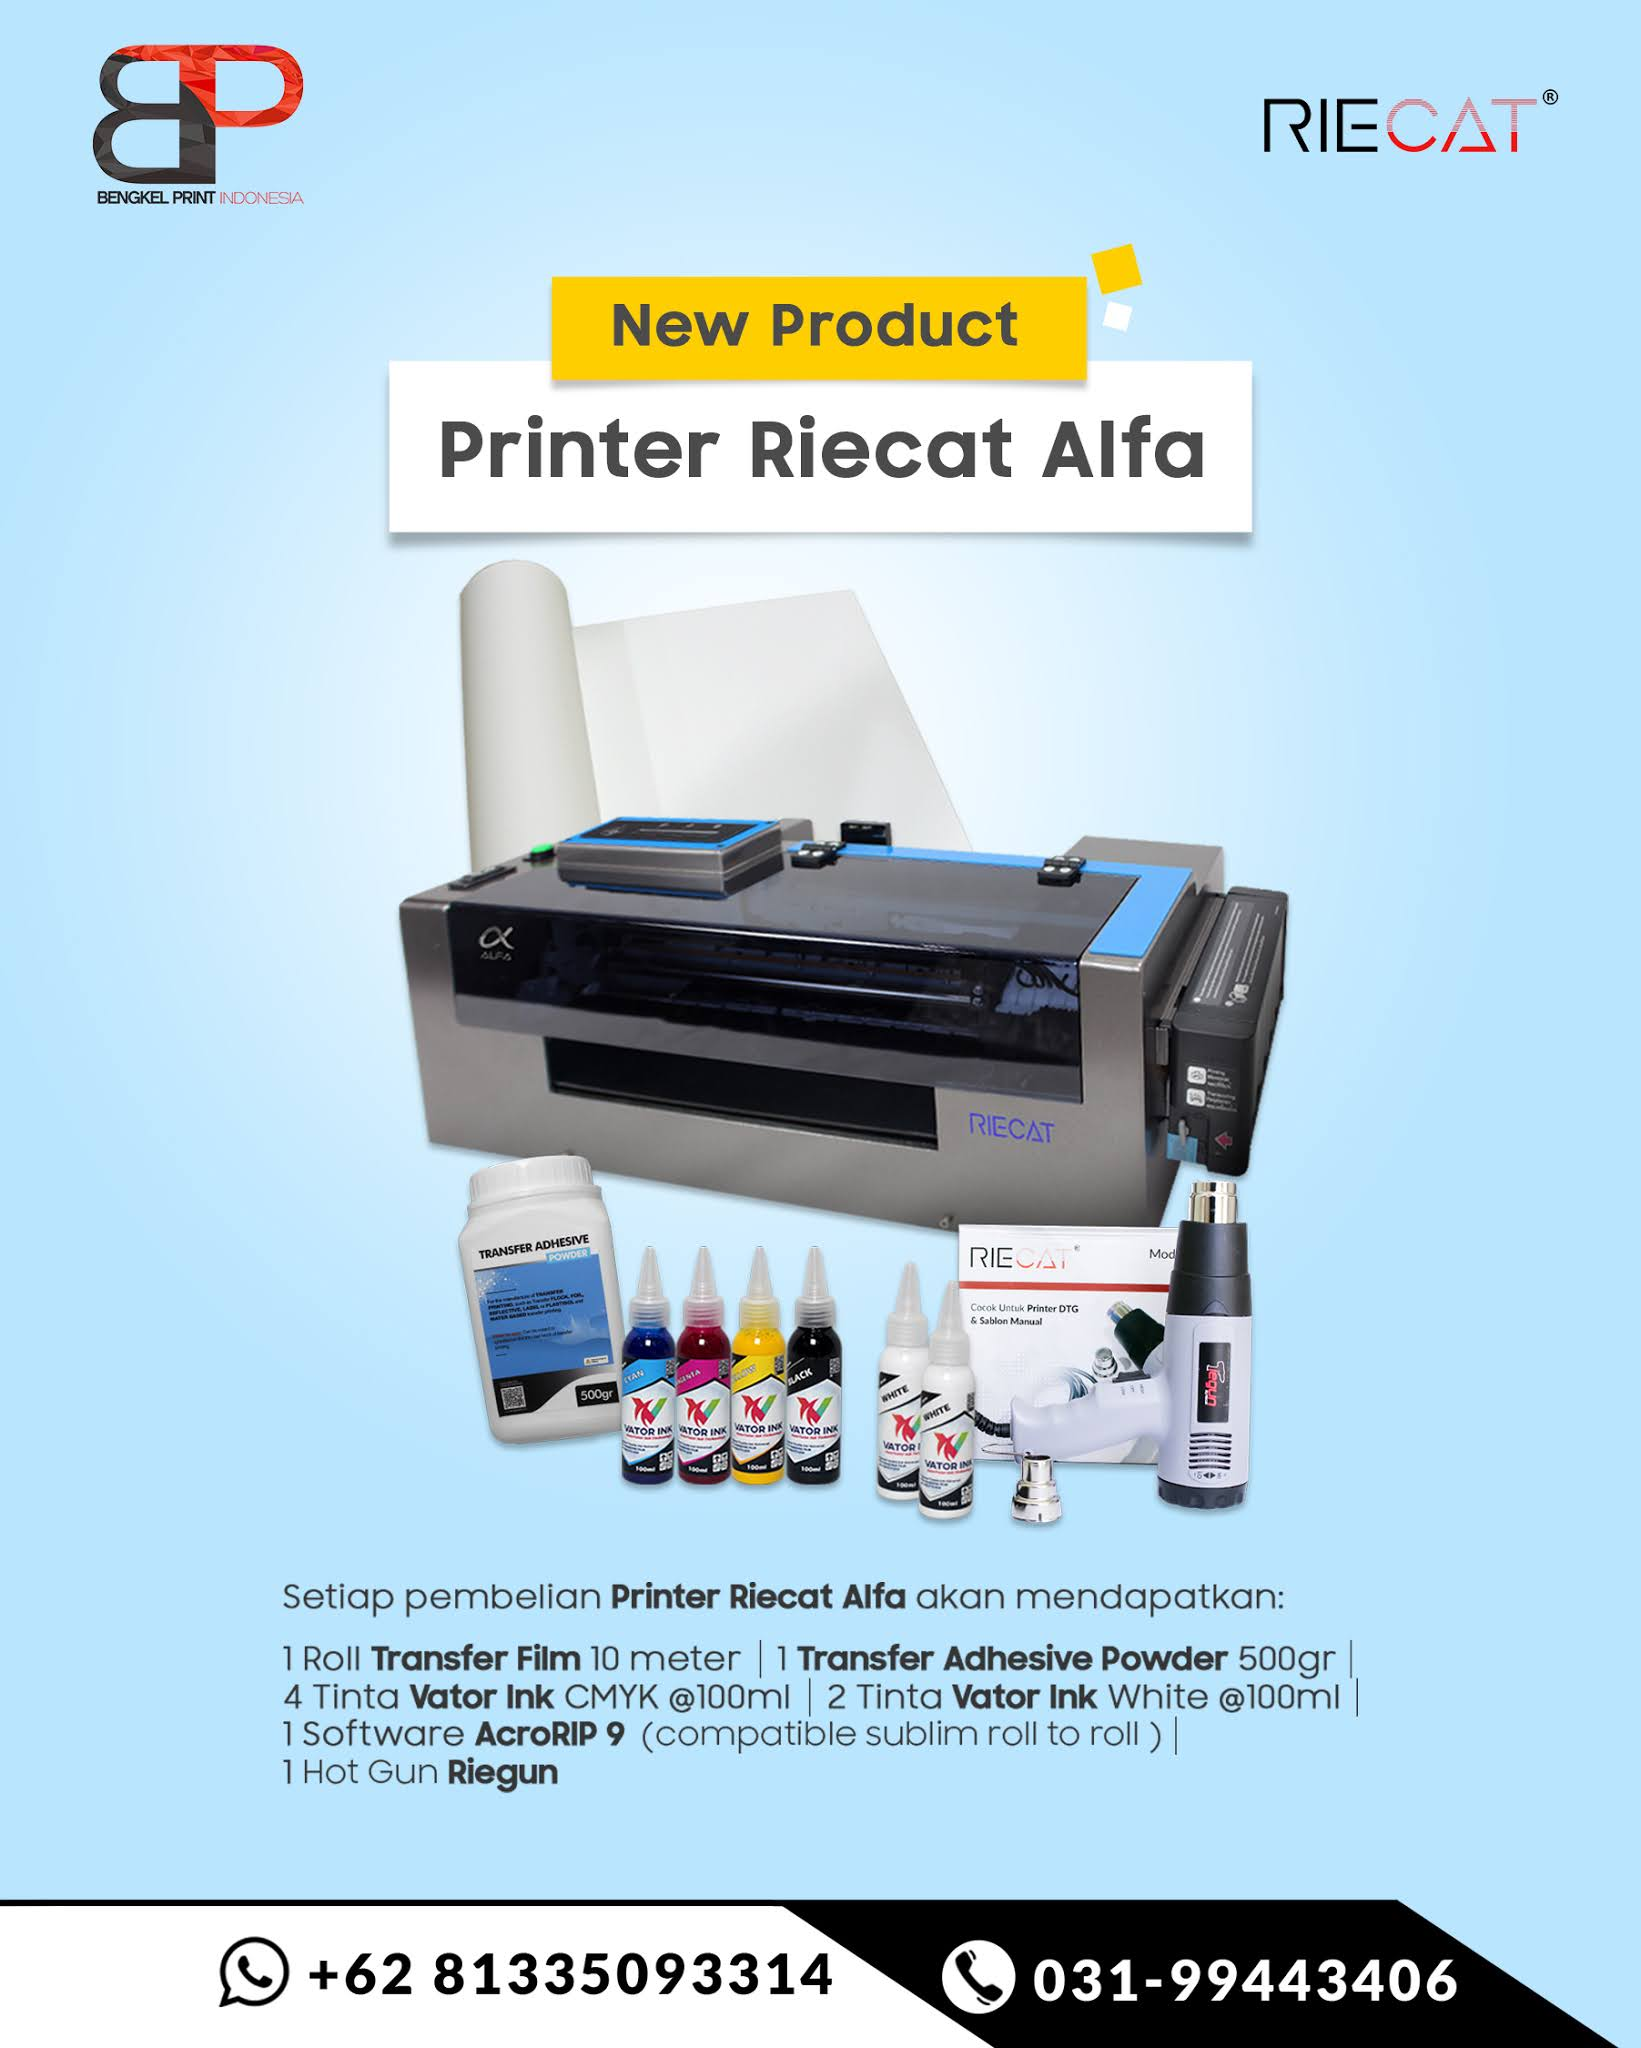 mesin printer riecat alfa murah